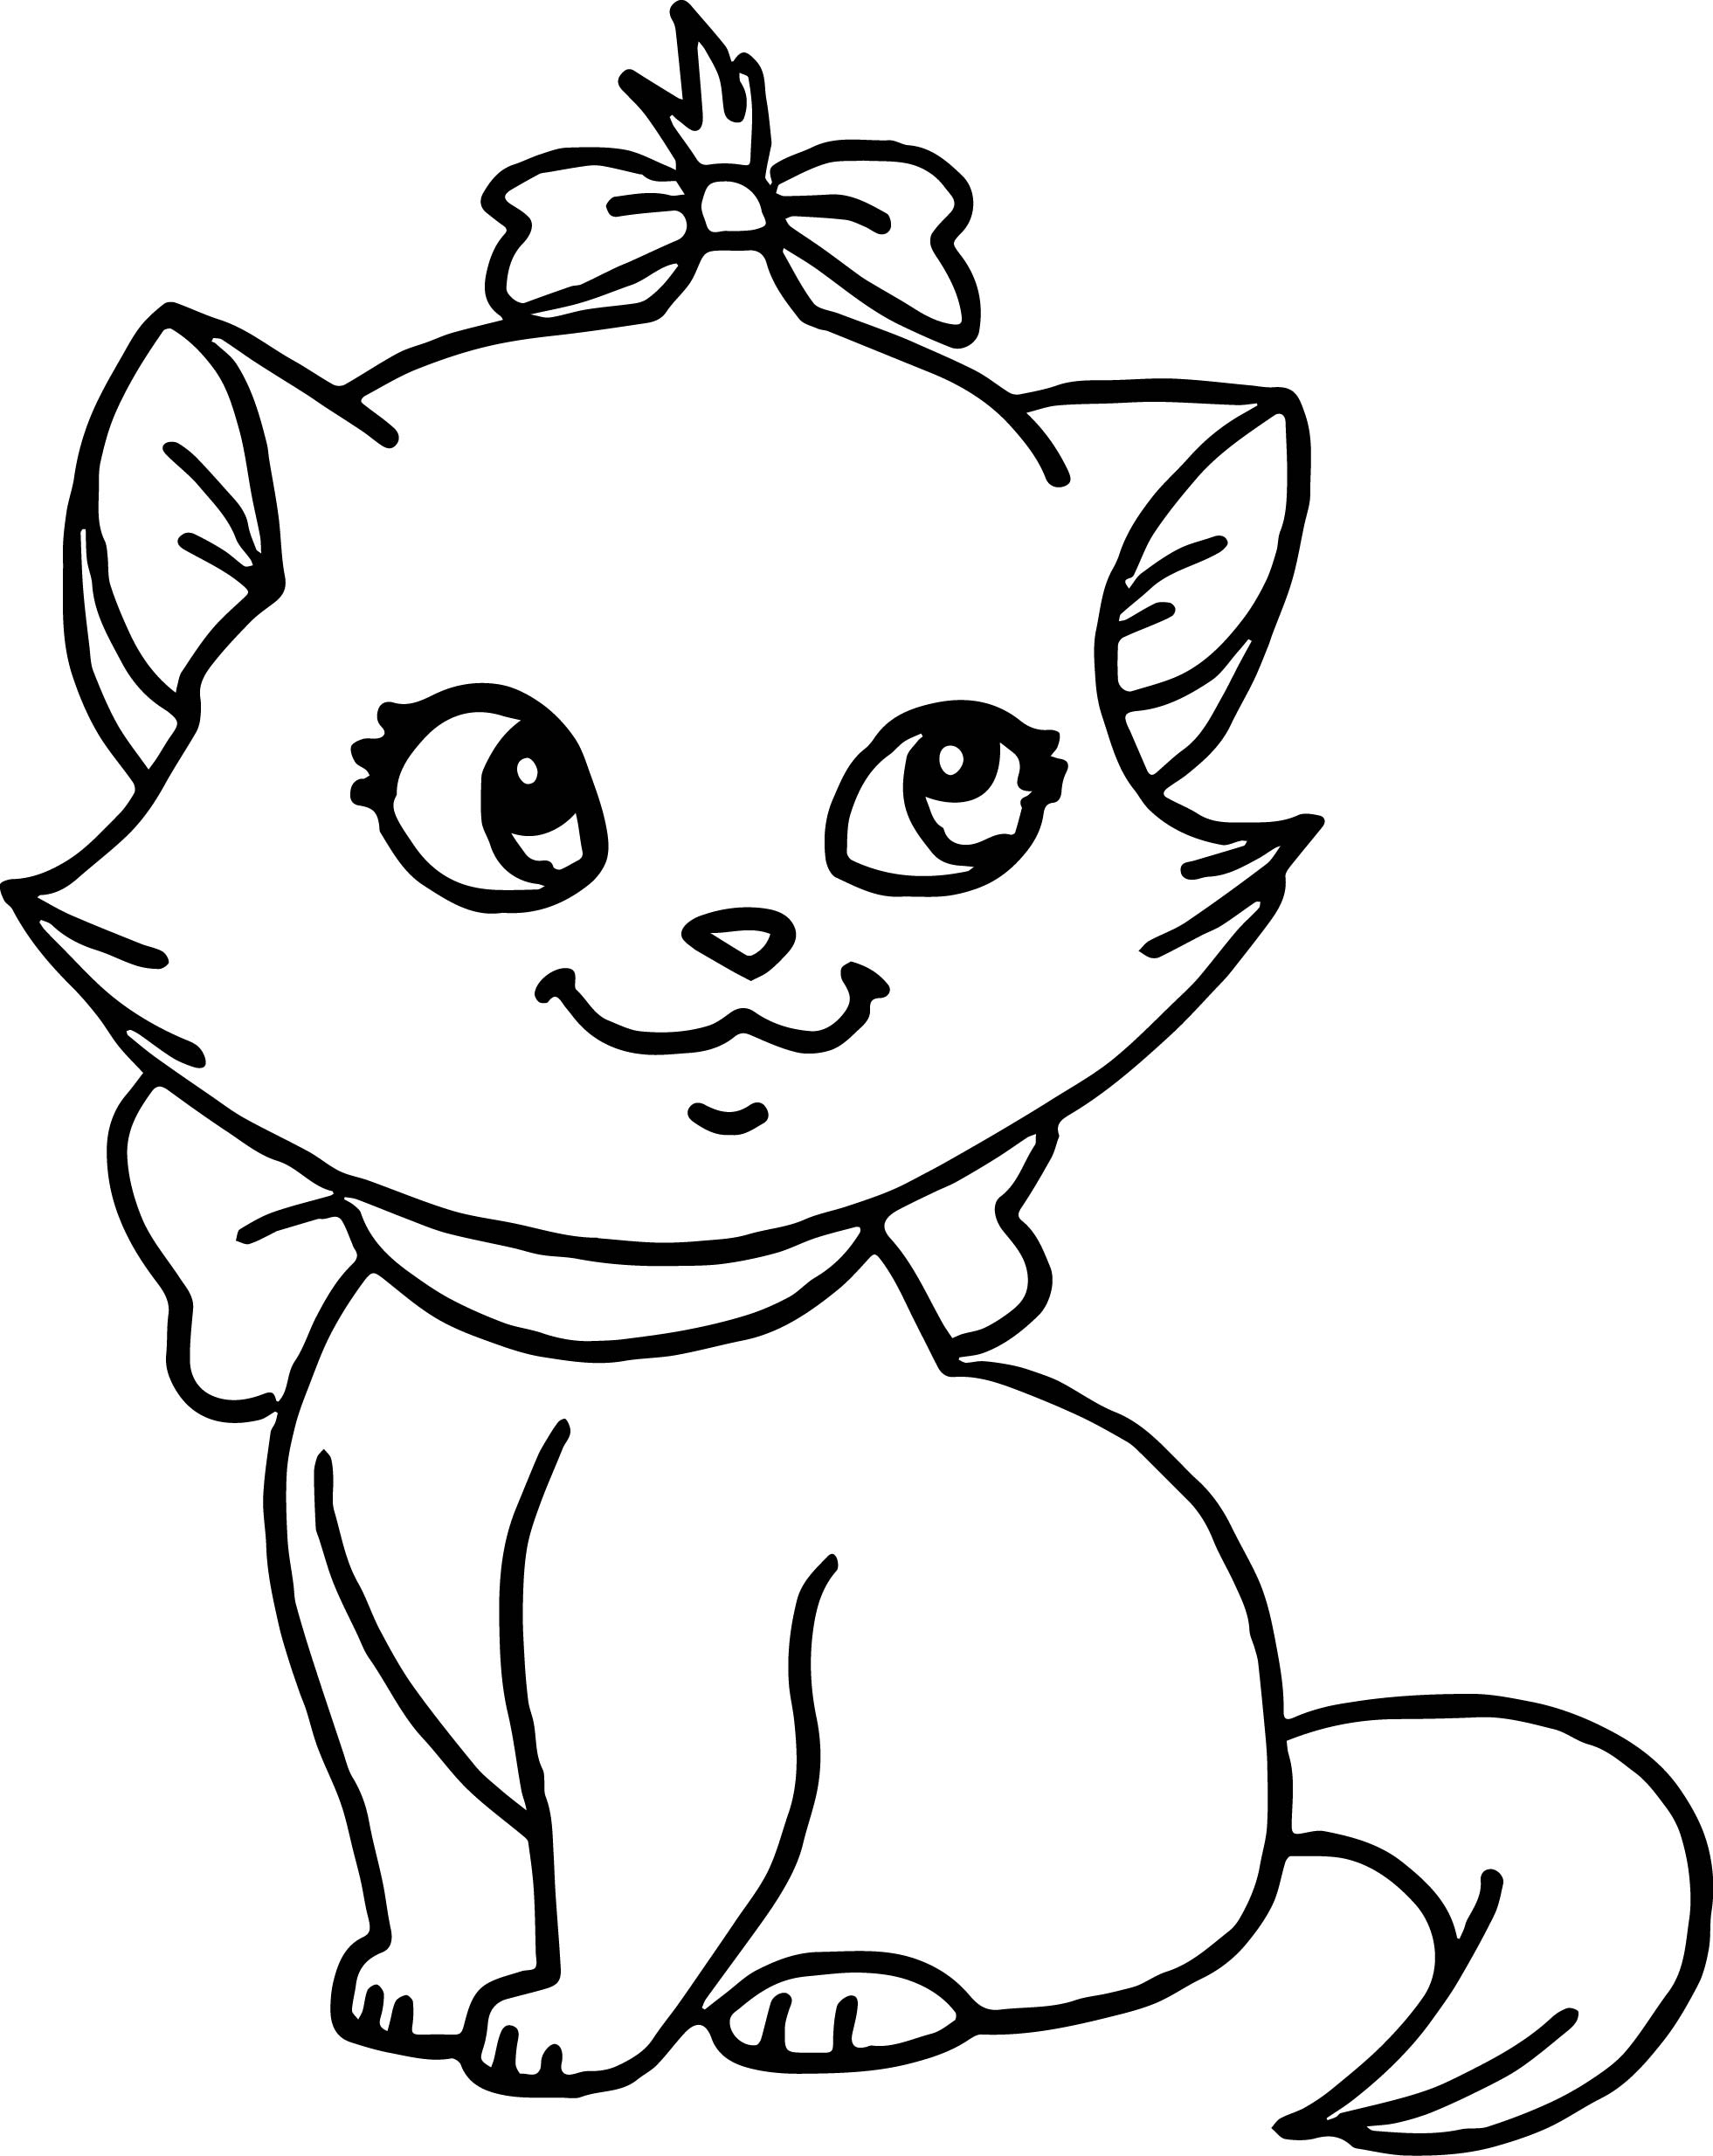 Disney The Small Aristocats Coloring Page